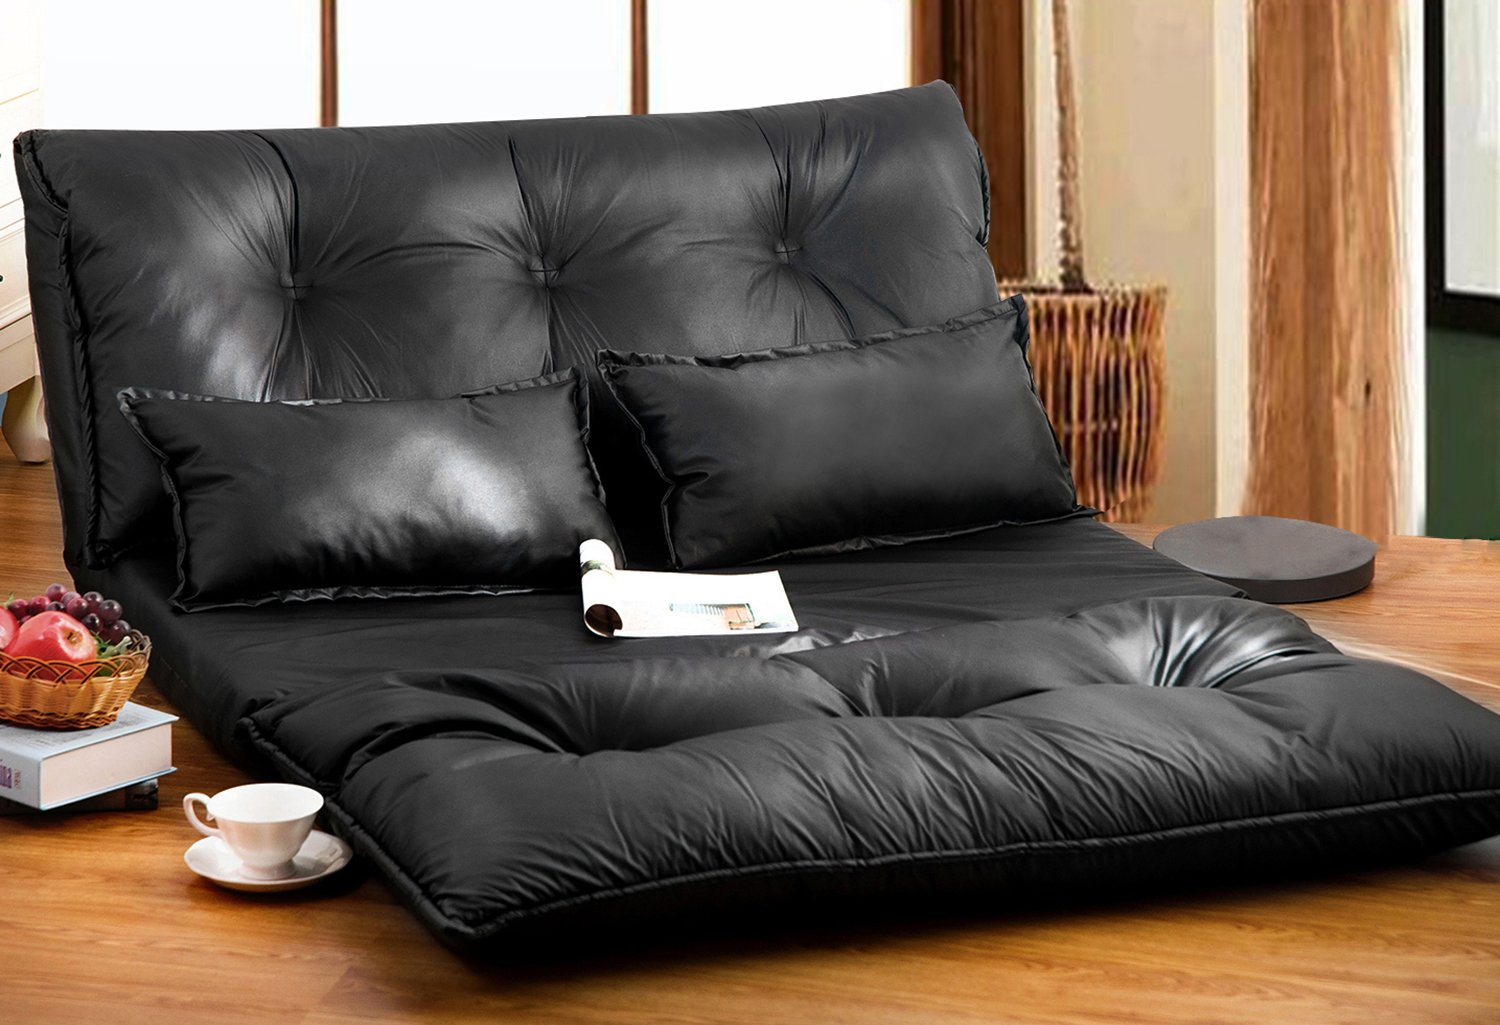 Amazon.com: Merax Pu Leather Foldable Modern Leisure Sofa Bed Video ...